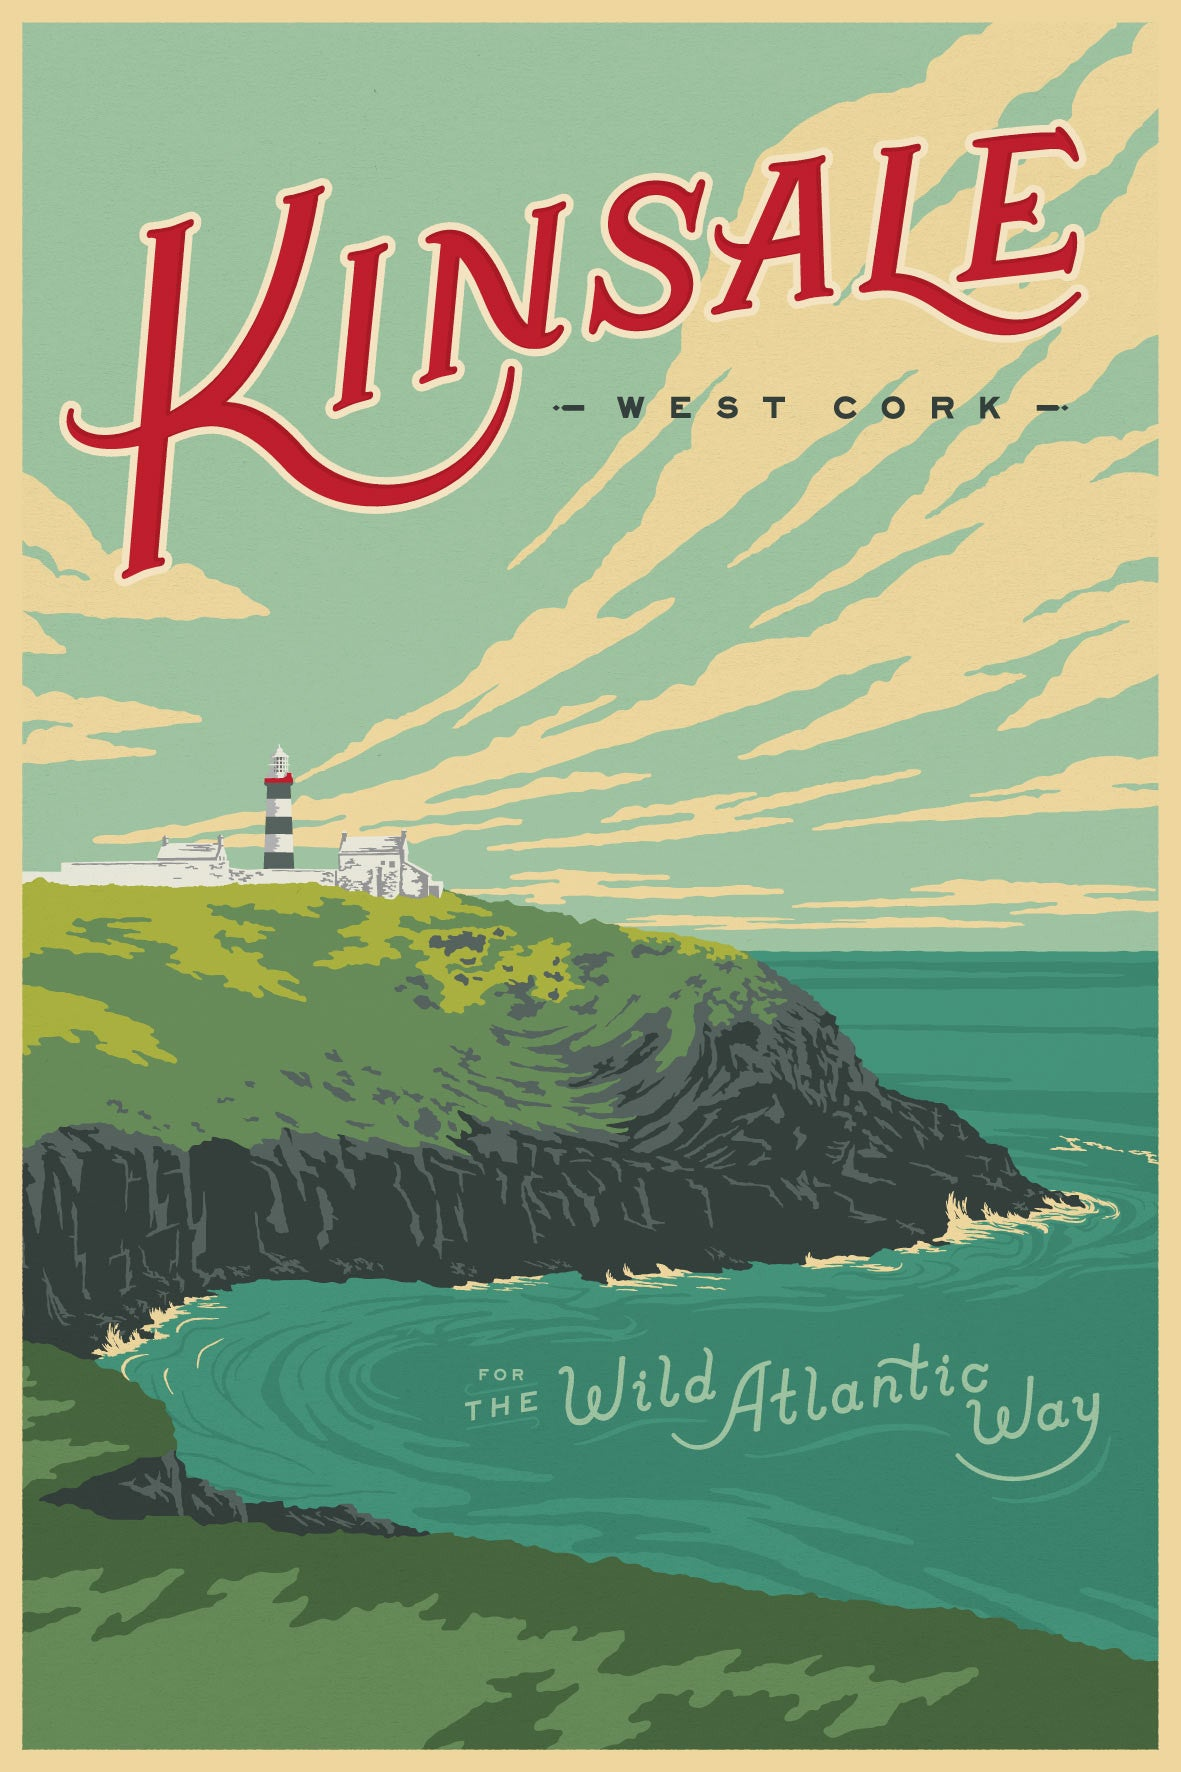 Wild Atlantic Way Vintage Travel Poster